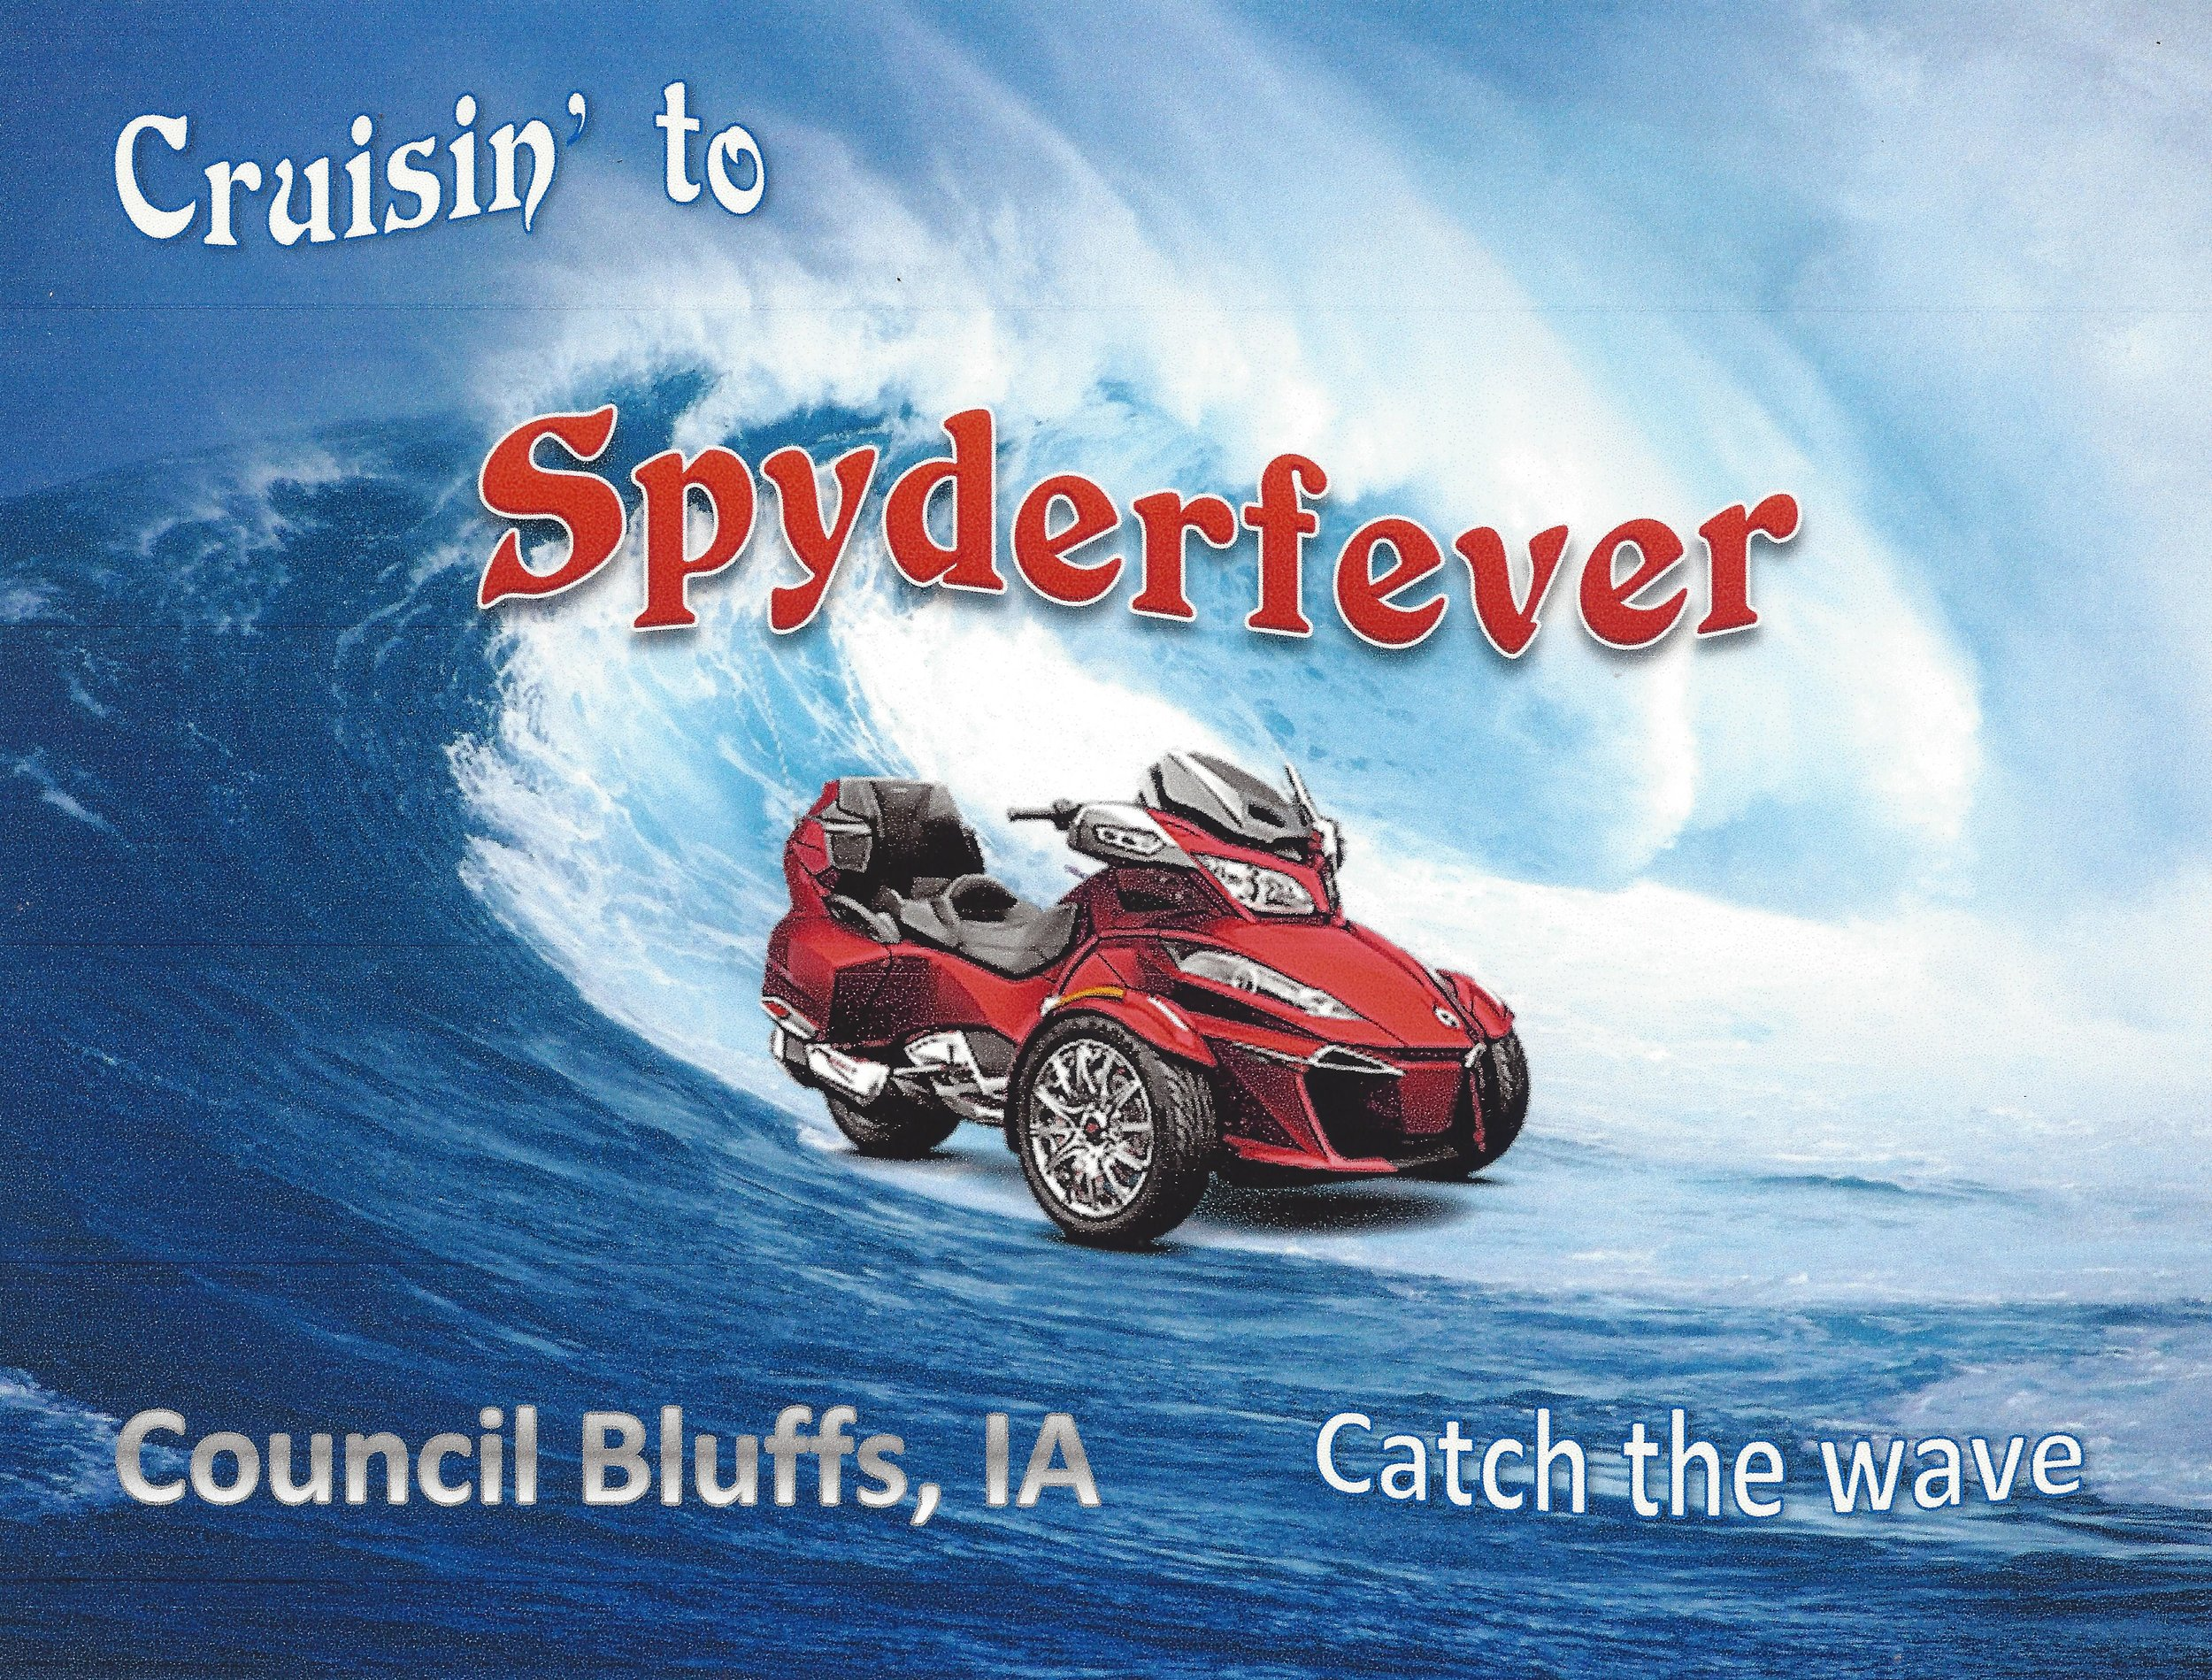 Spyderfever-2019-picture-proposal-1.jpg